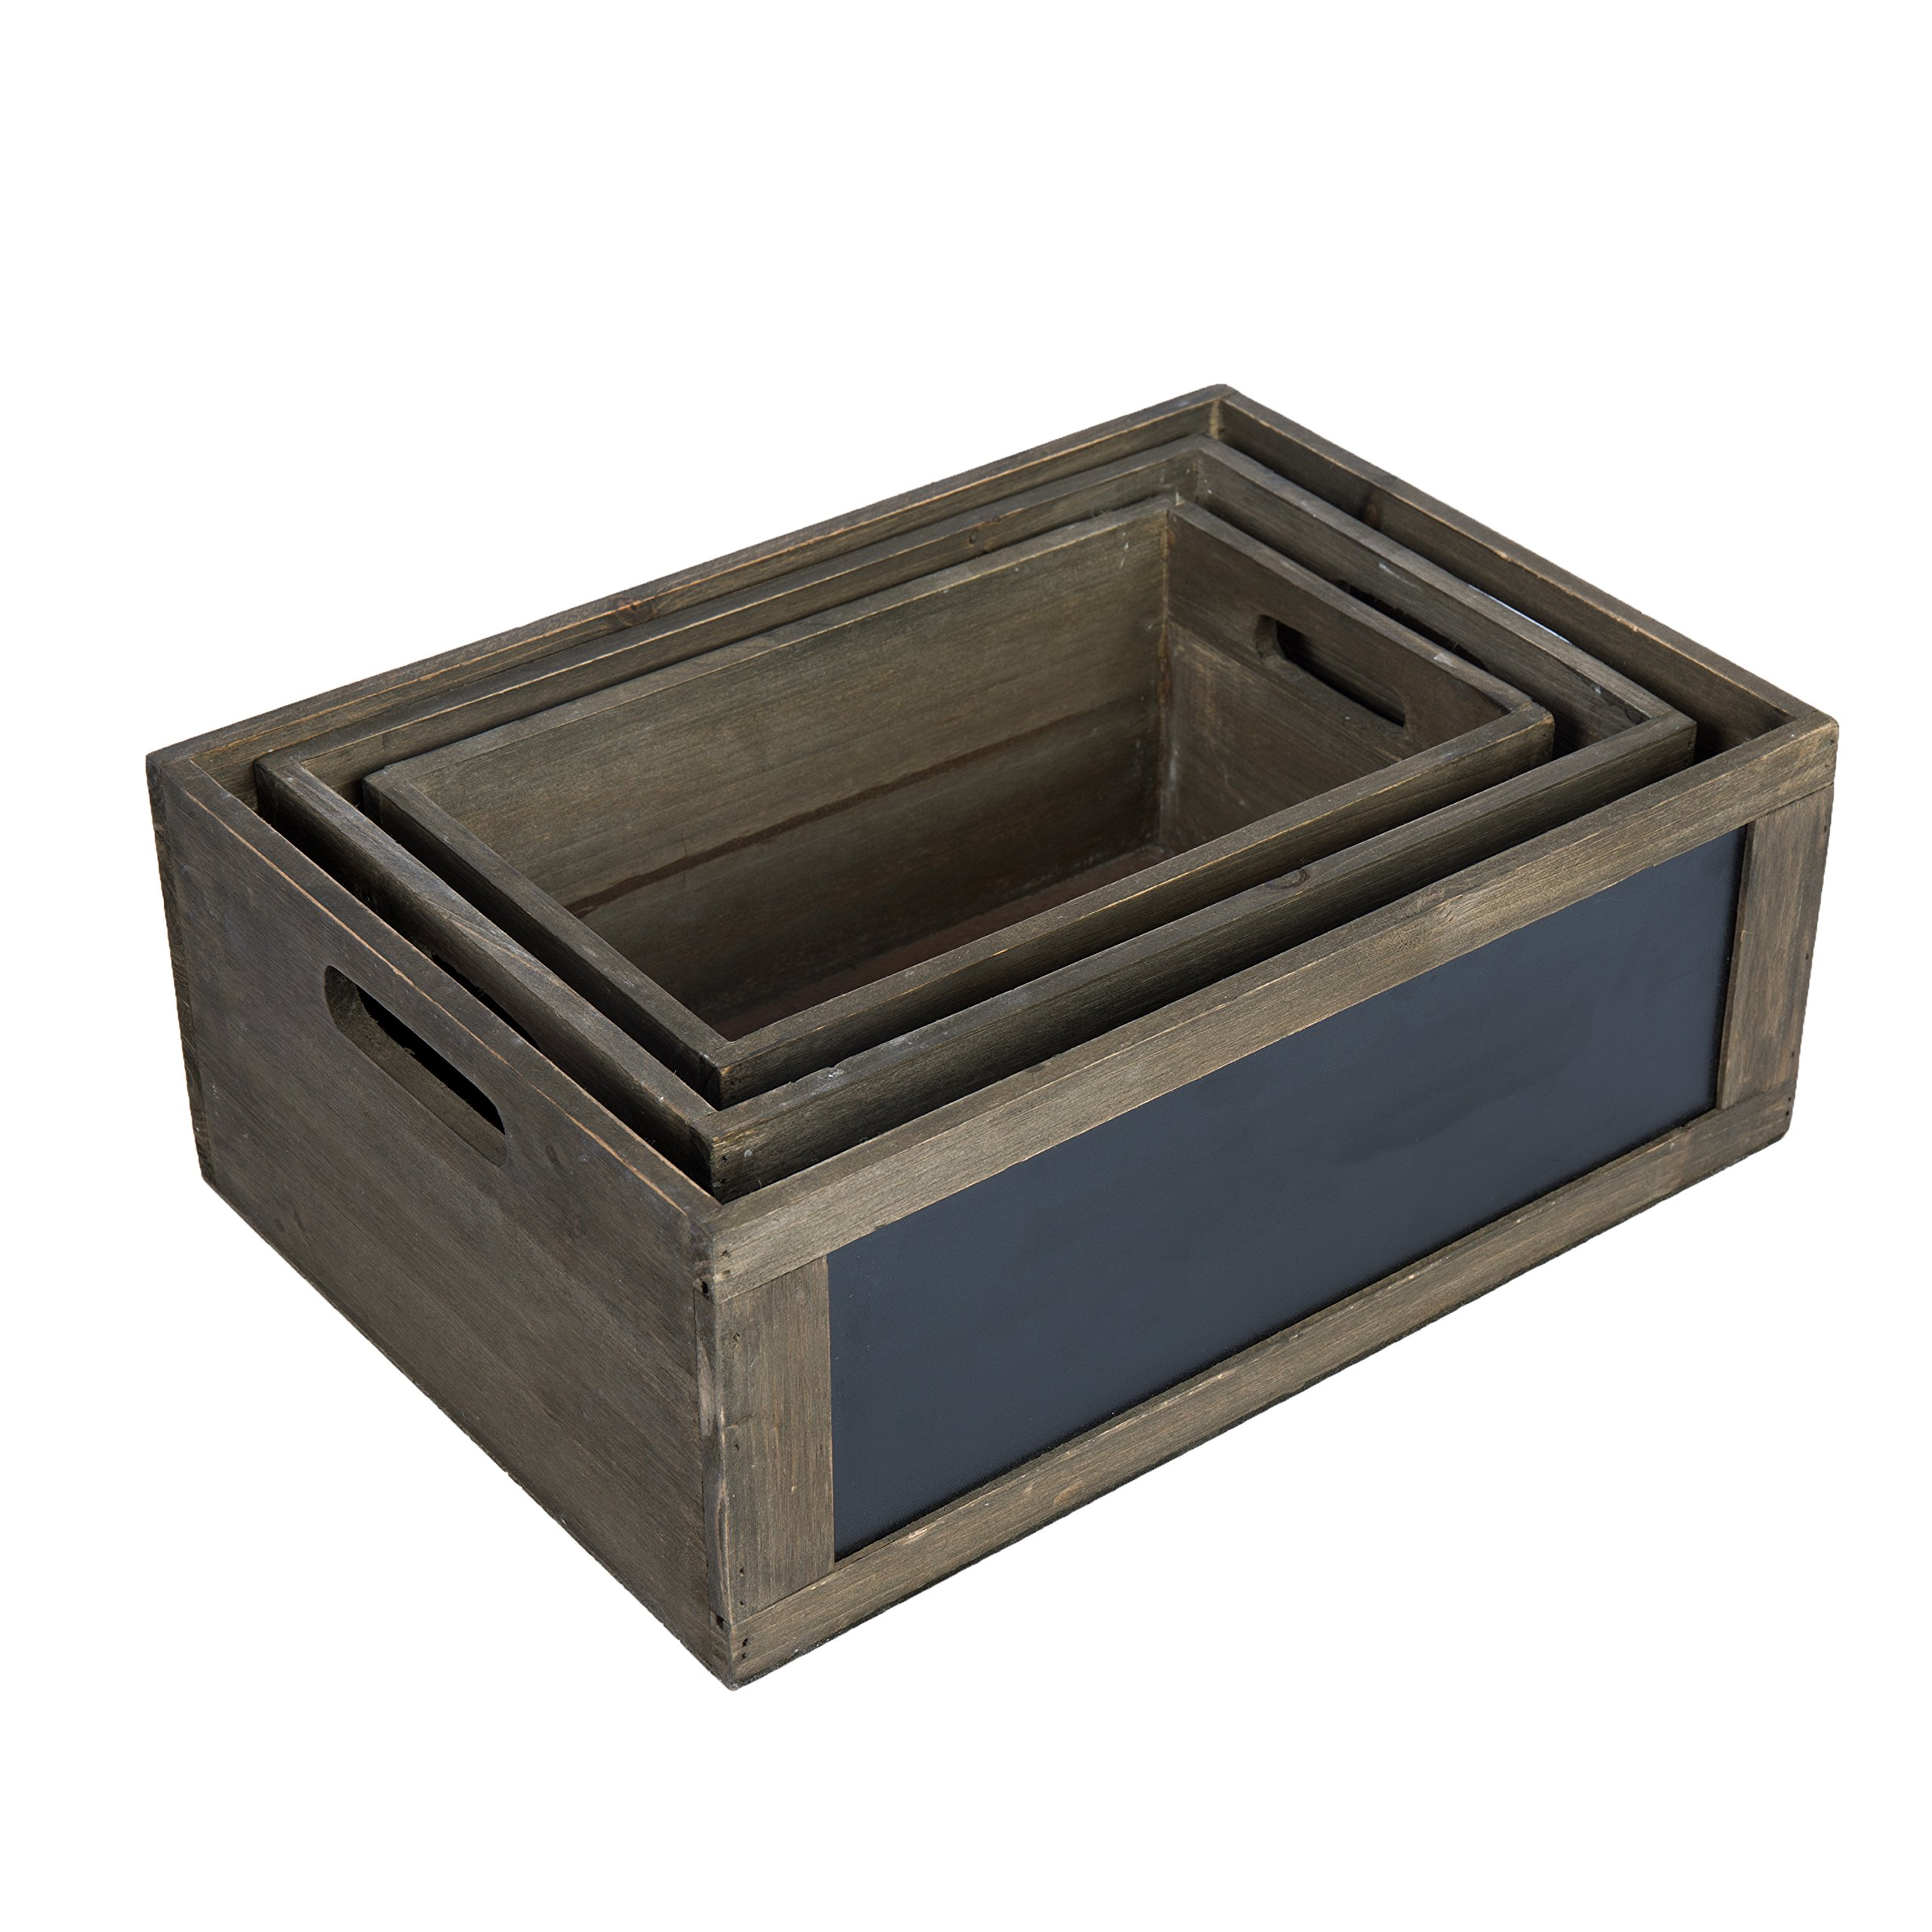 MyGift Rustic Brown Wood Nesting Storage Crates with Chalkboard Front Panel and Cutout Handles, Set of 3 by MyGift (Image #5)